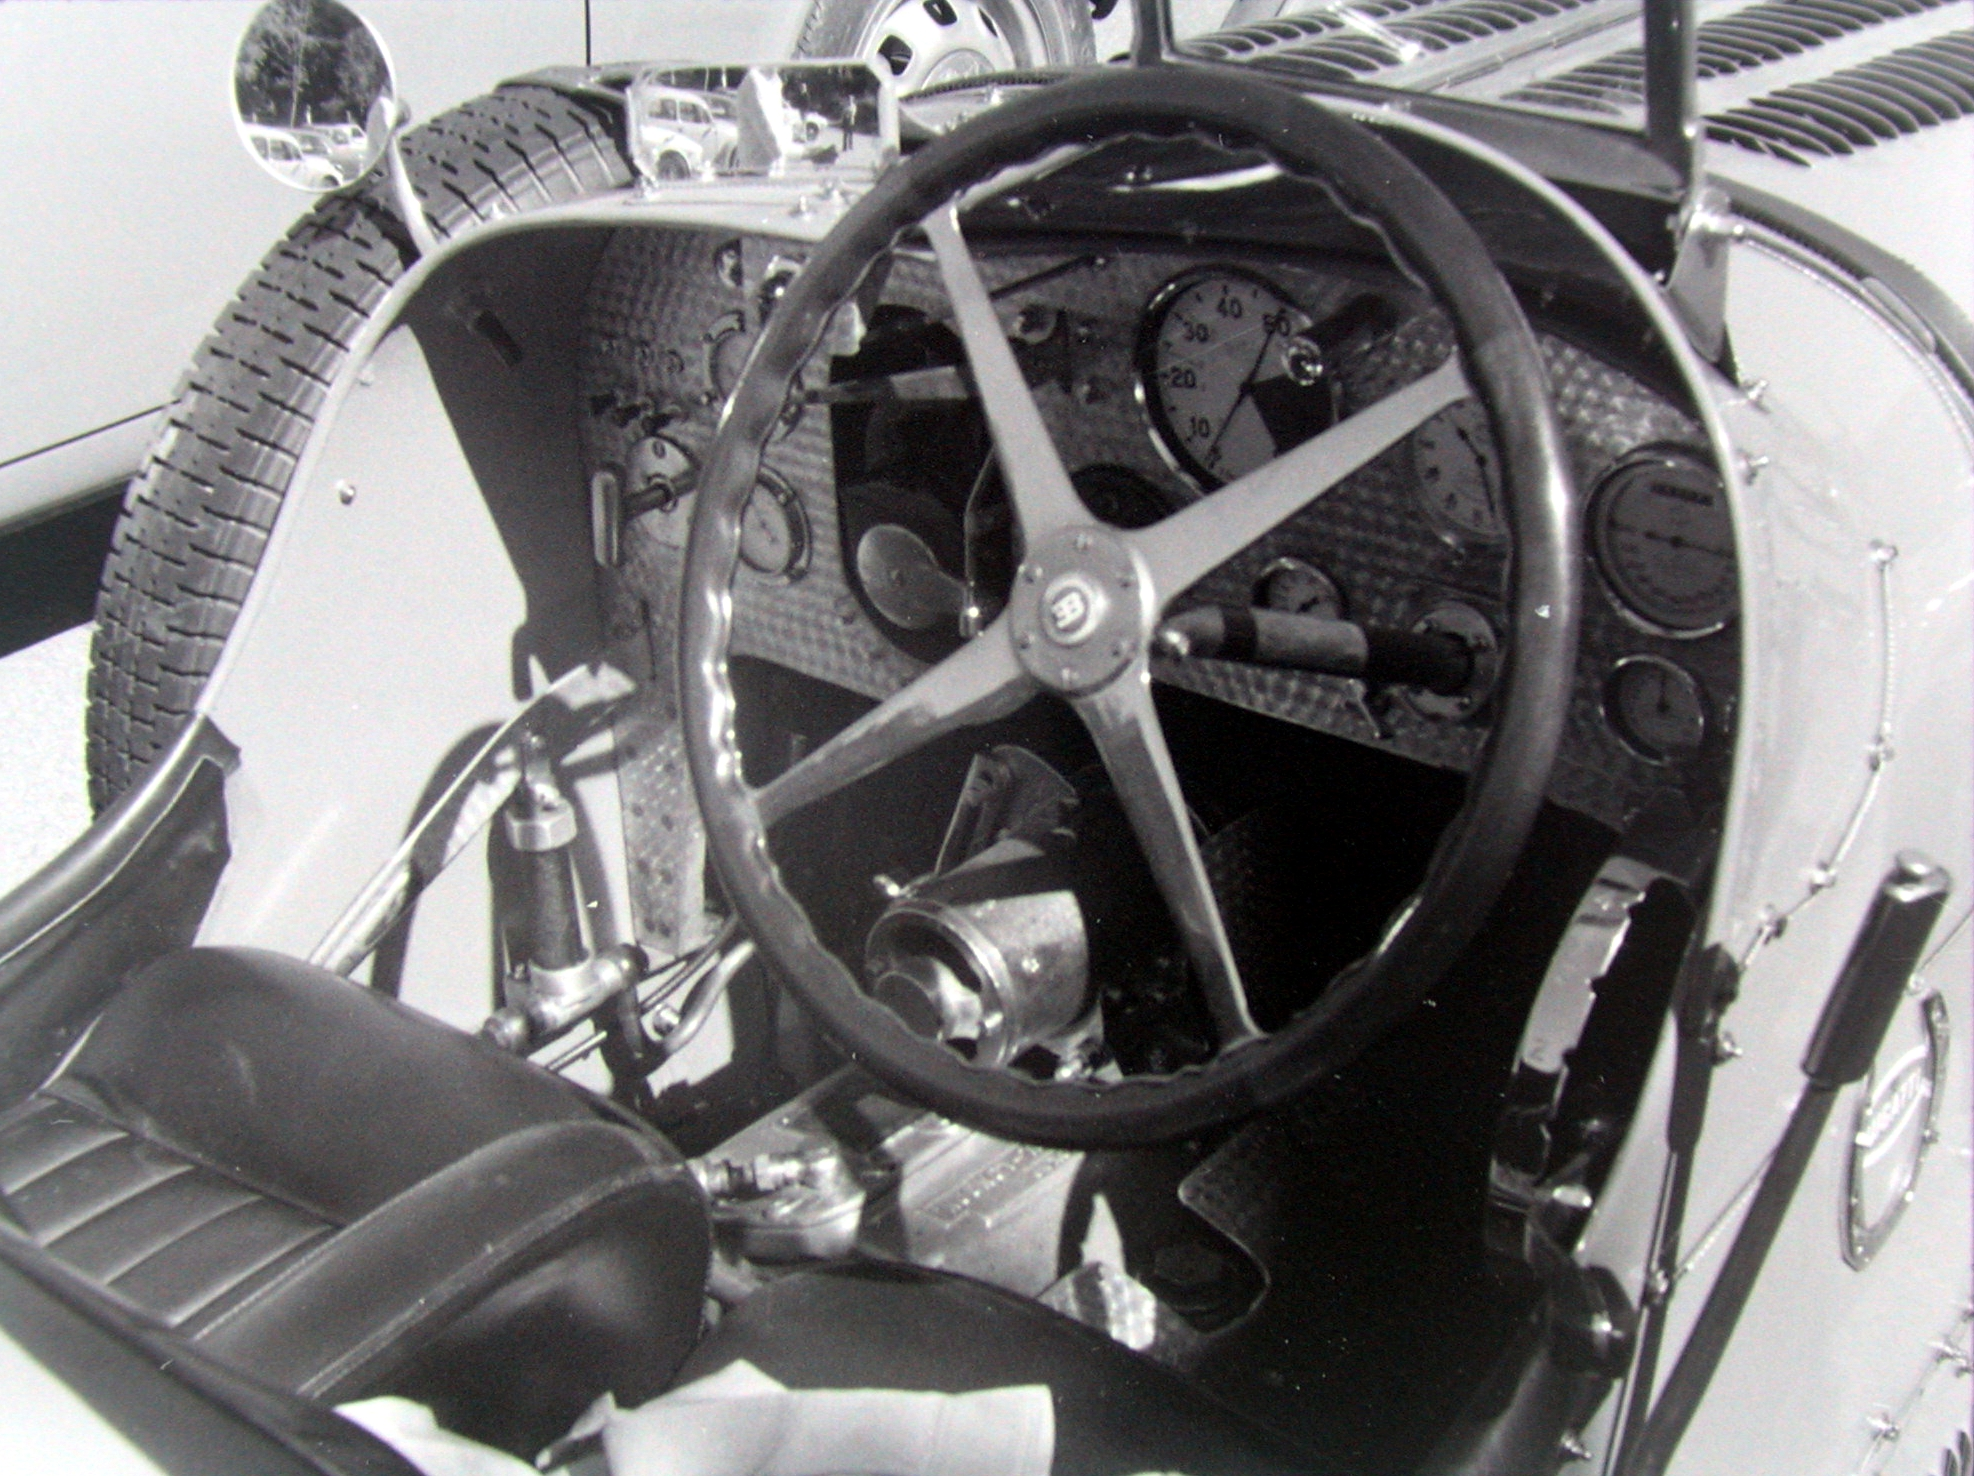 Bugatti 51 Cockpit with Preselector gearshift clutchless